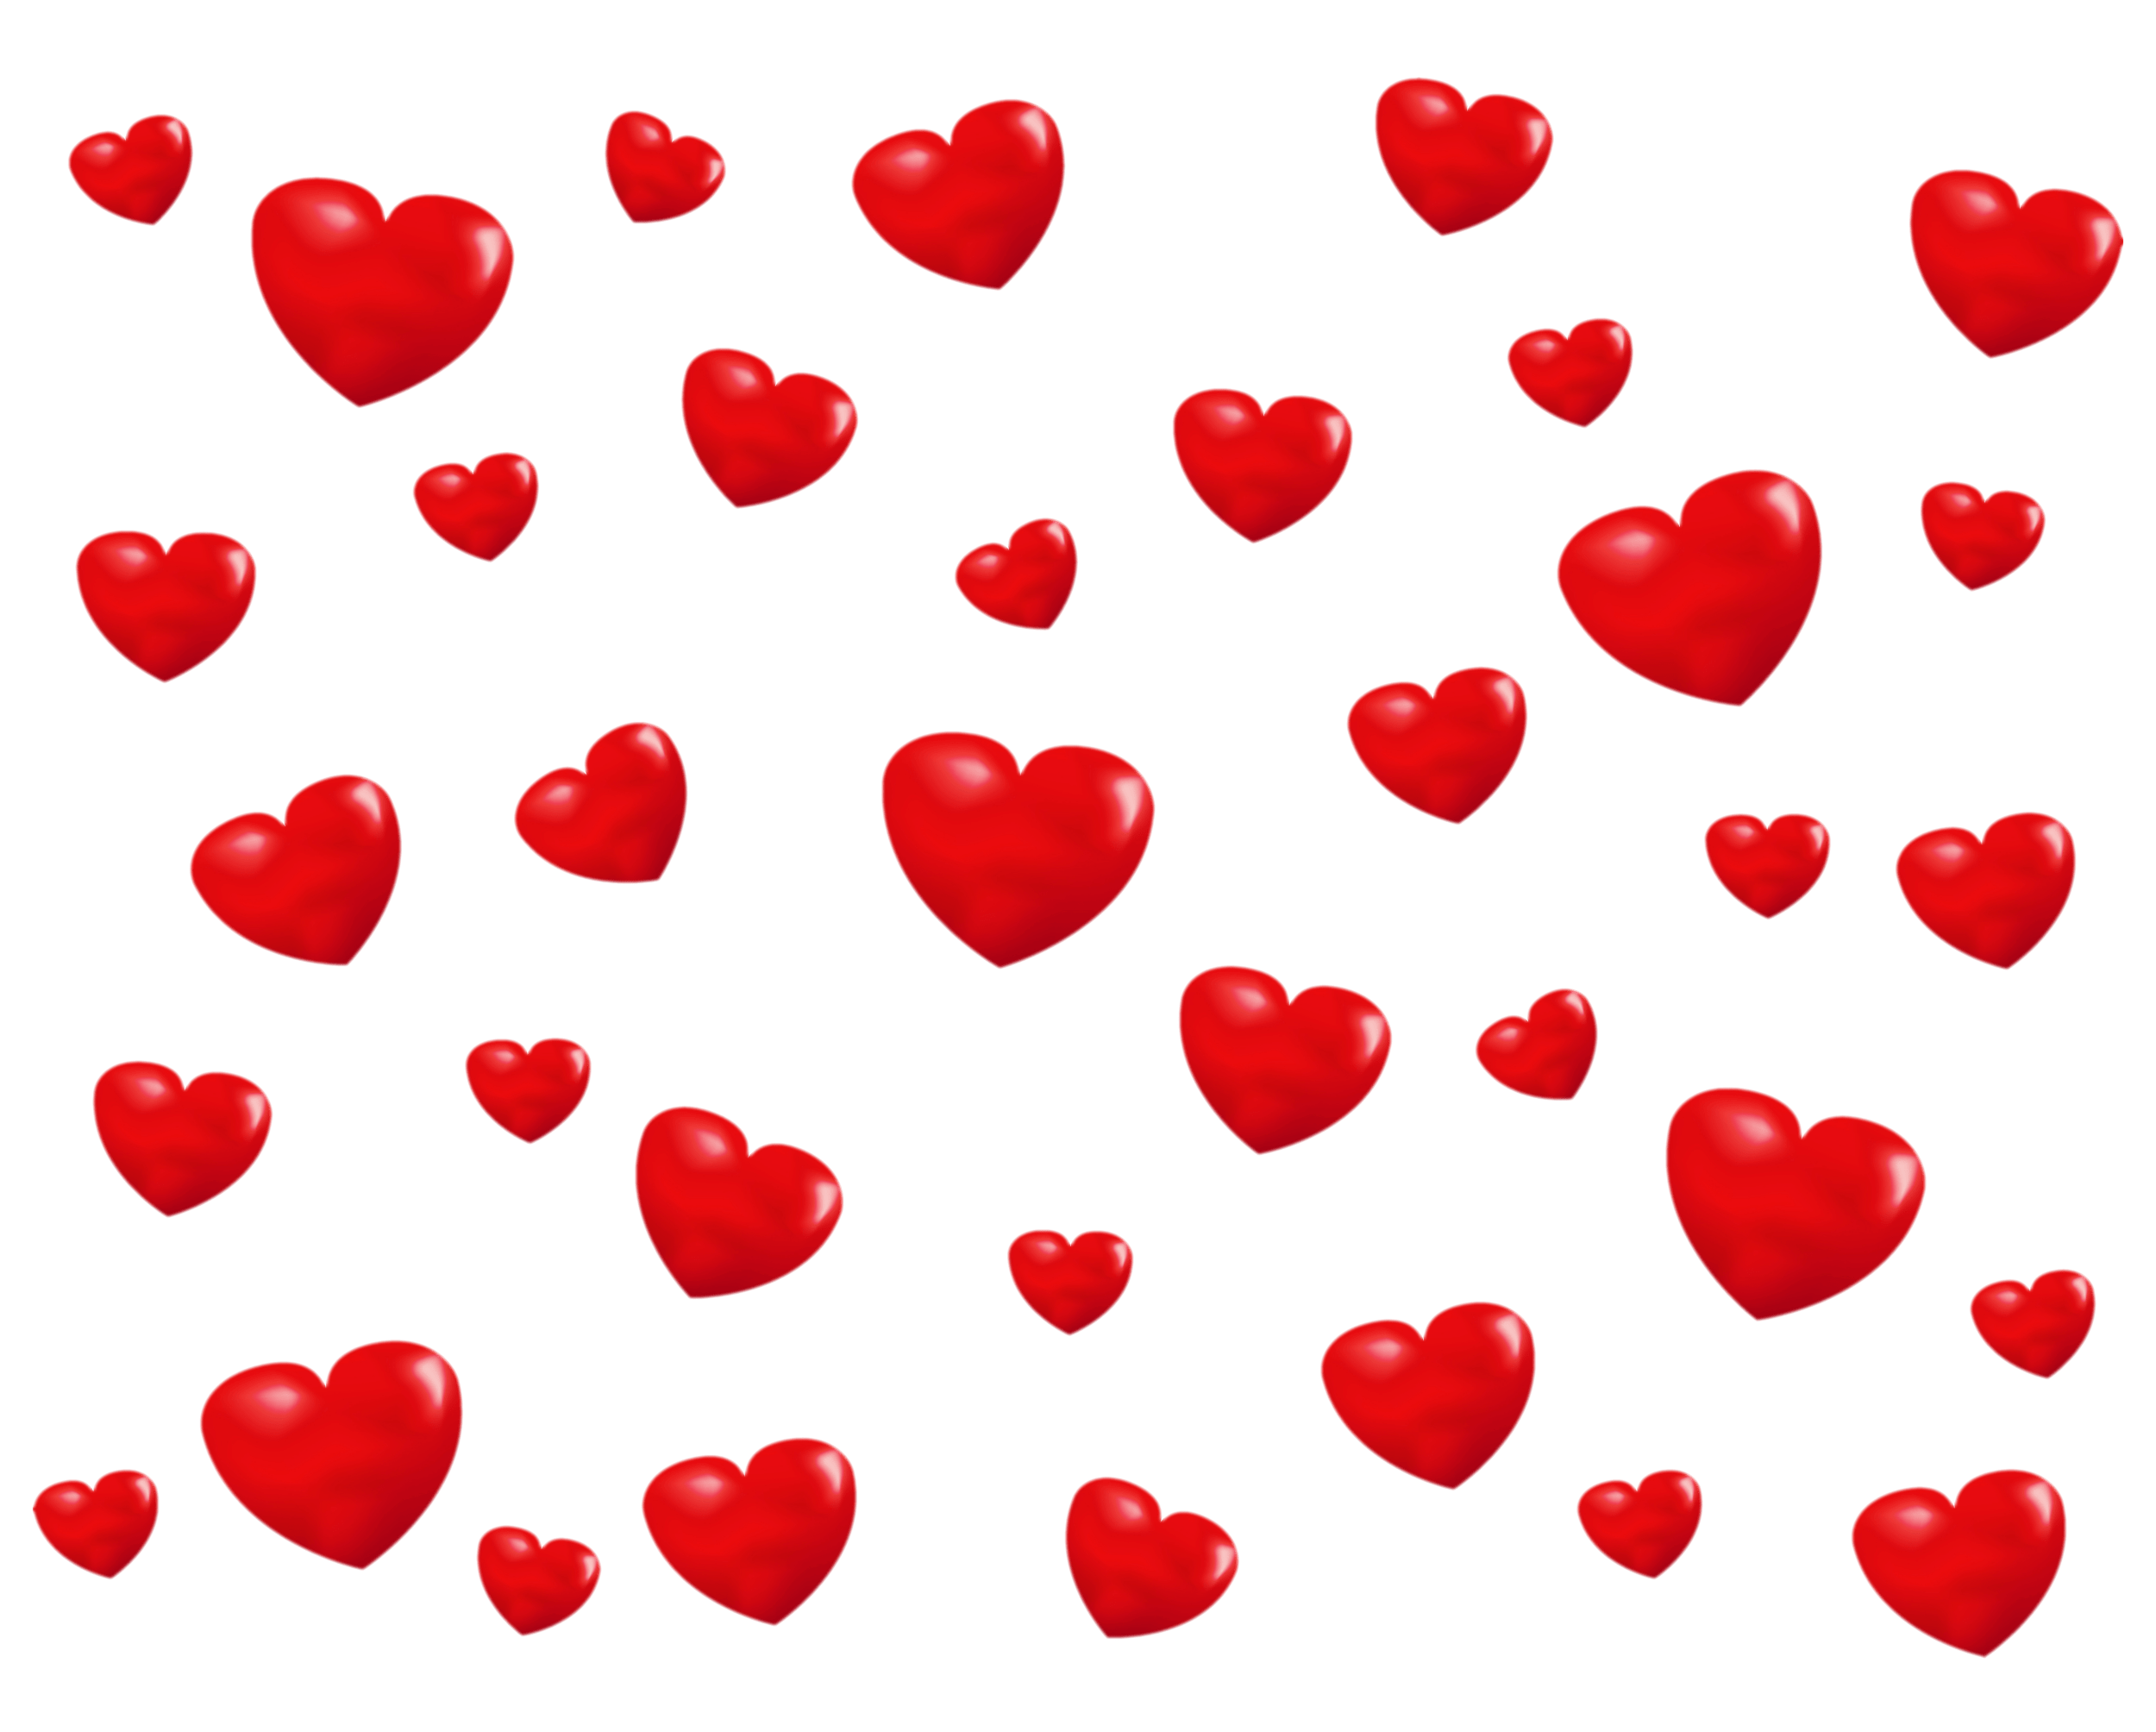 Hearts png. Little overlay photos